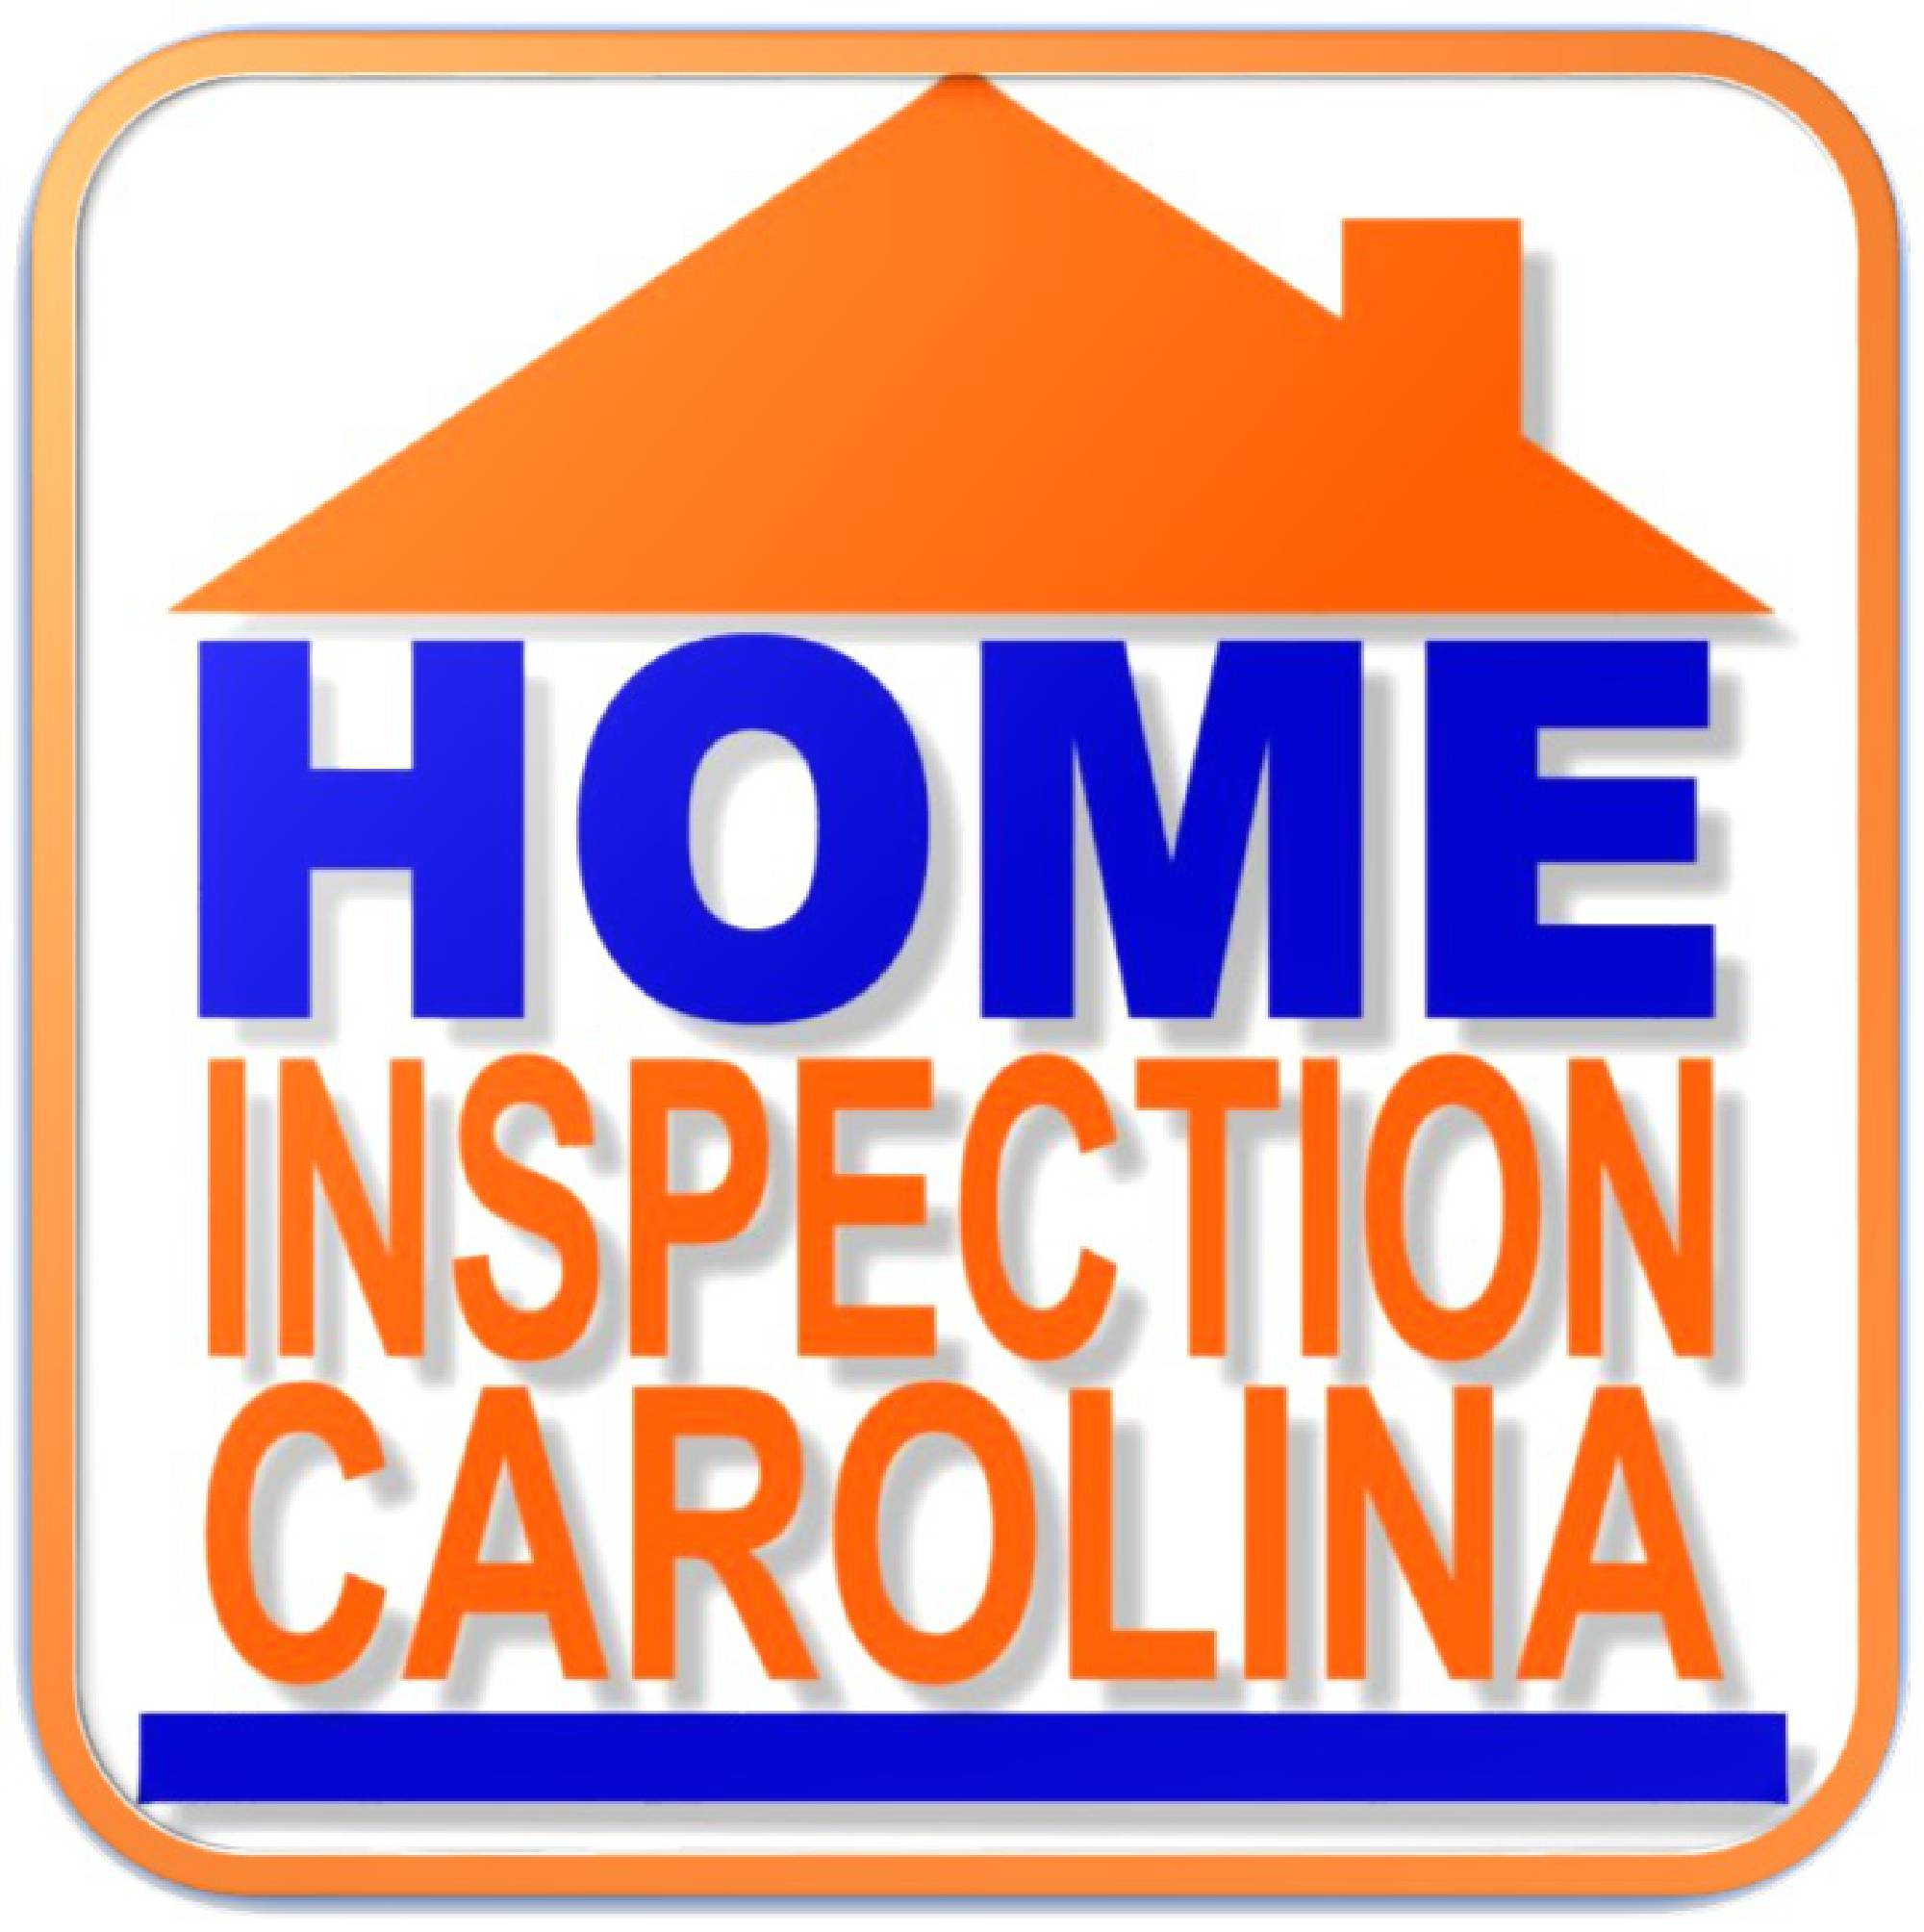 Home Inpsection Carolina